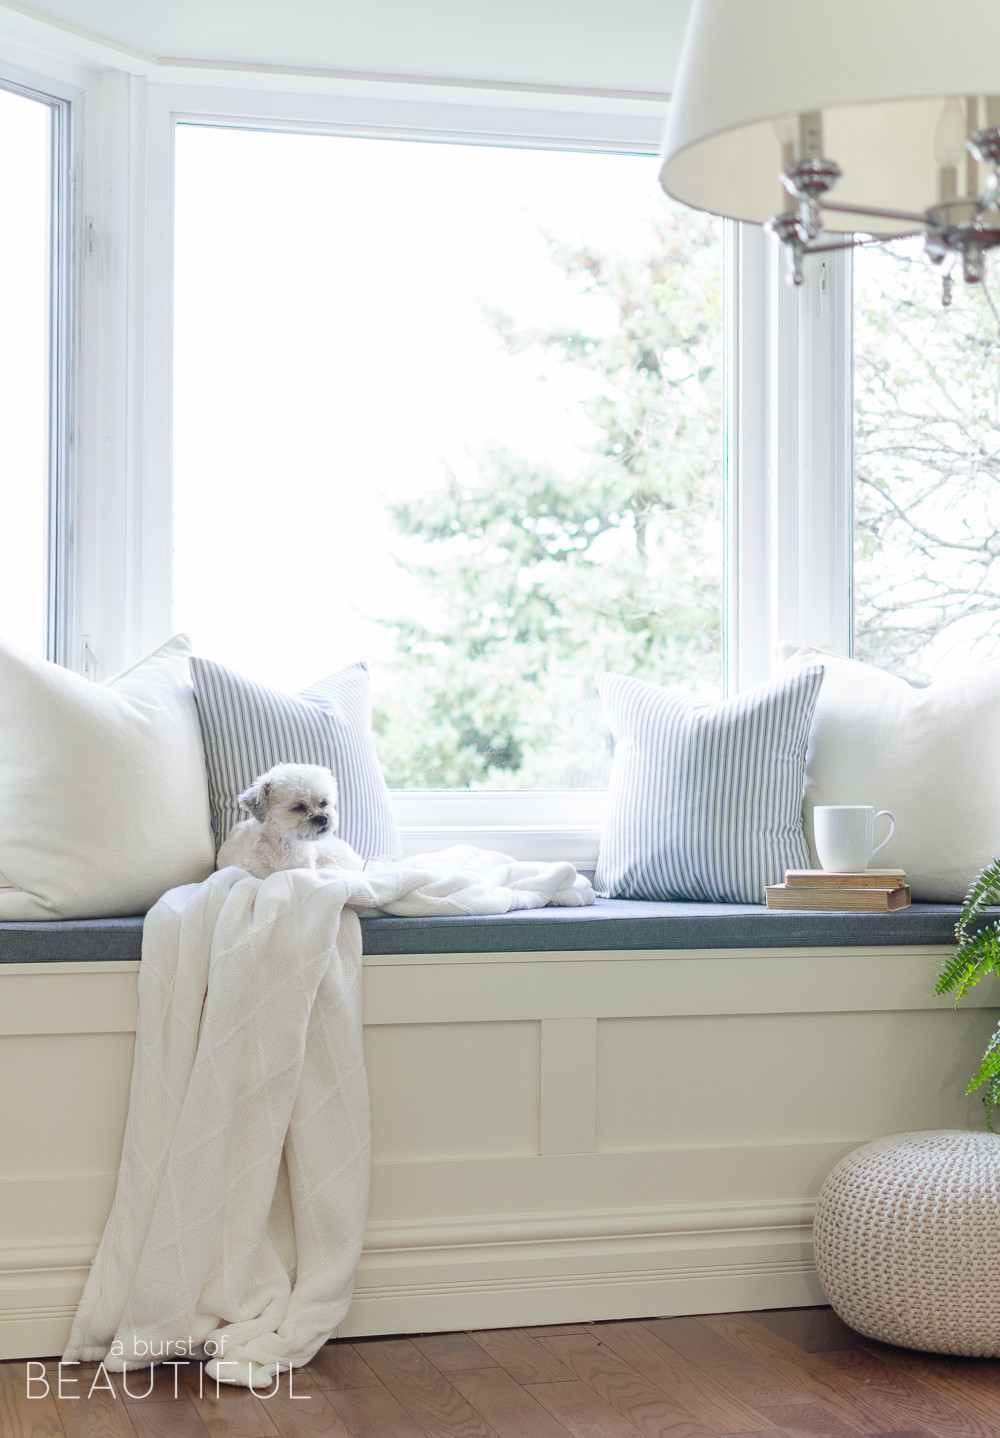 Best ideas about DIY Window Seats With Storage . Save or Pin DIY Window Bench with Storage A Burst of Beautiful Now.